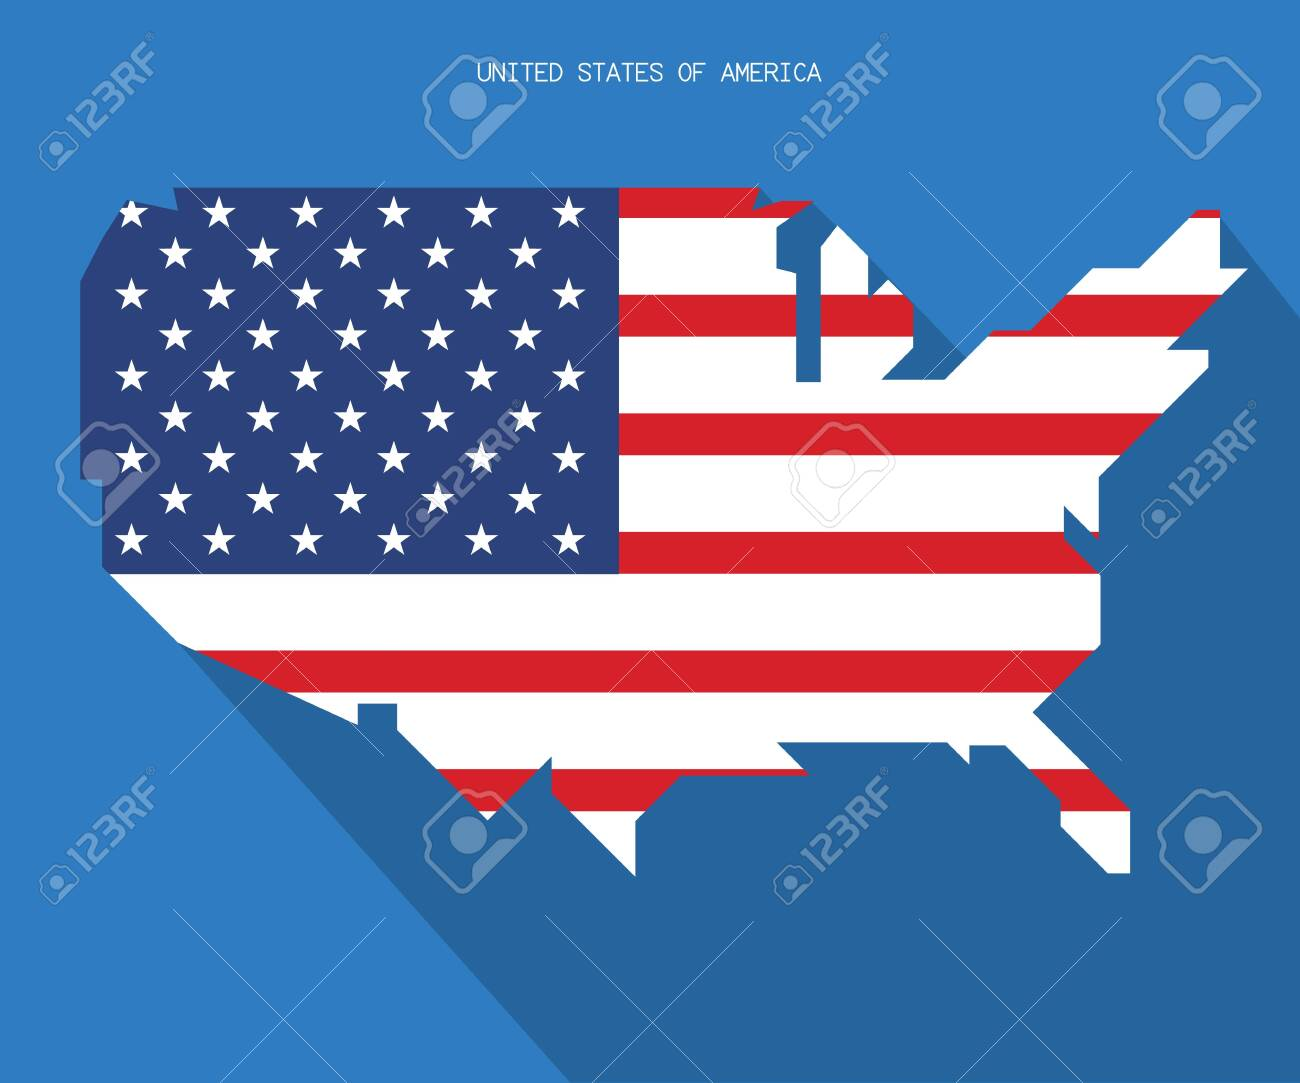 UNITED STATES OF AMERICA MAP, USA vector, Independence day background - 139064721